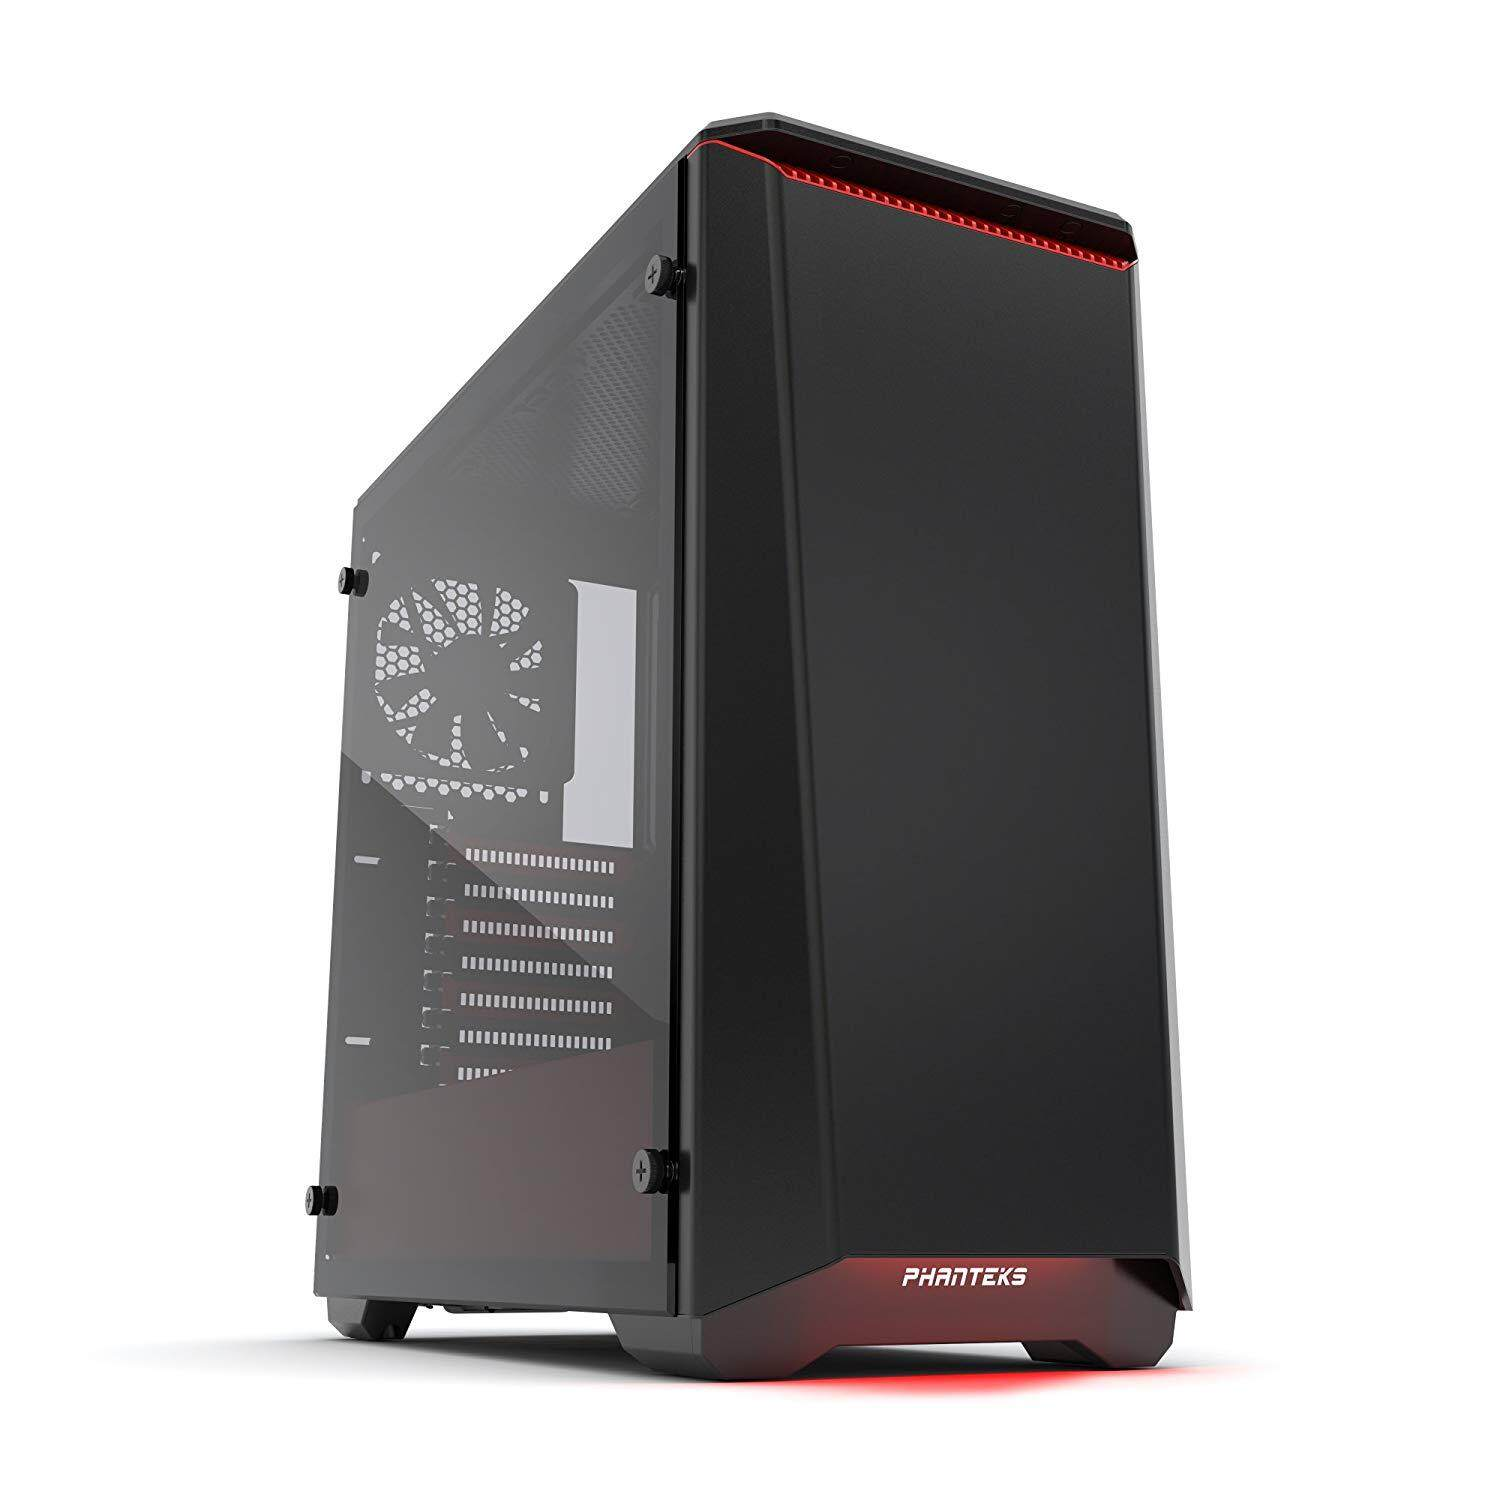 PHANTEKS ECLIPSE P400S RGB TEMPERED GLASS BLACK/RED CHASSIS Malaysia